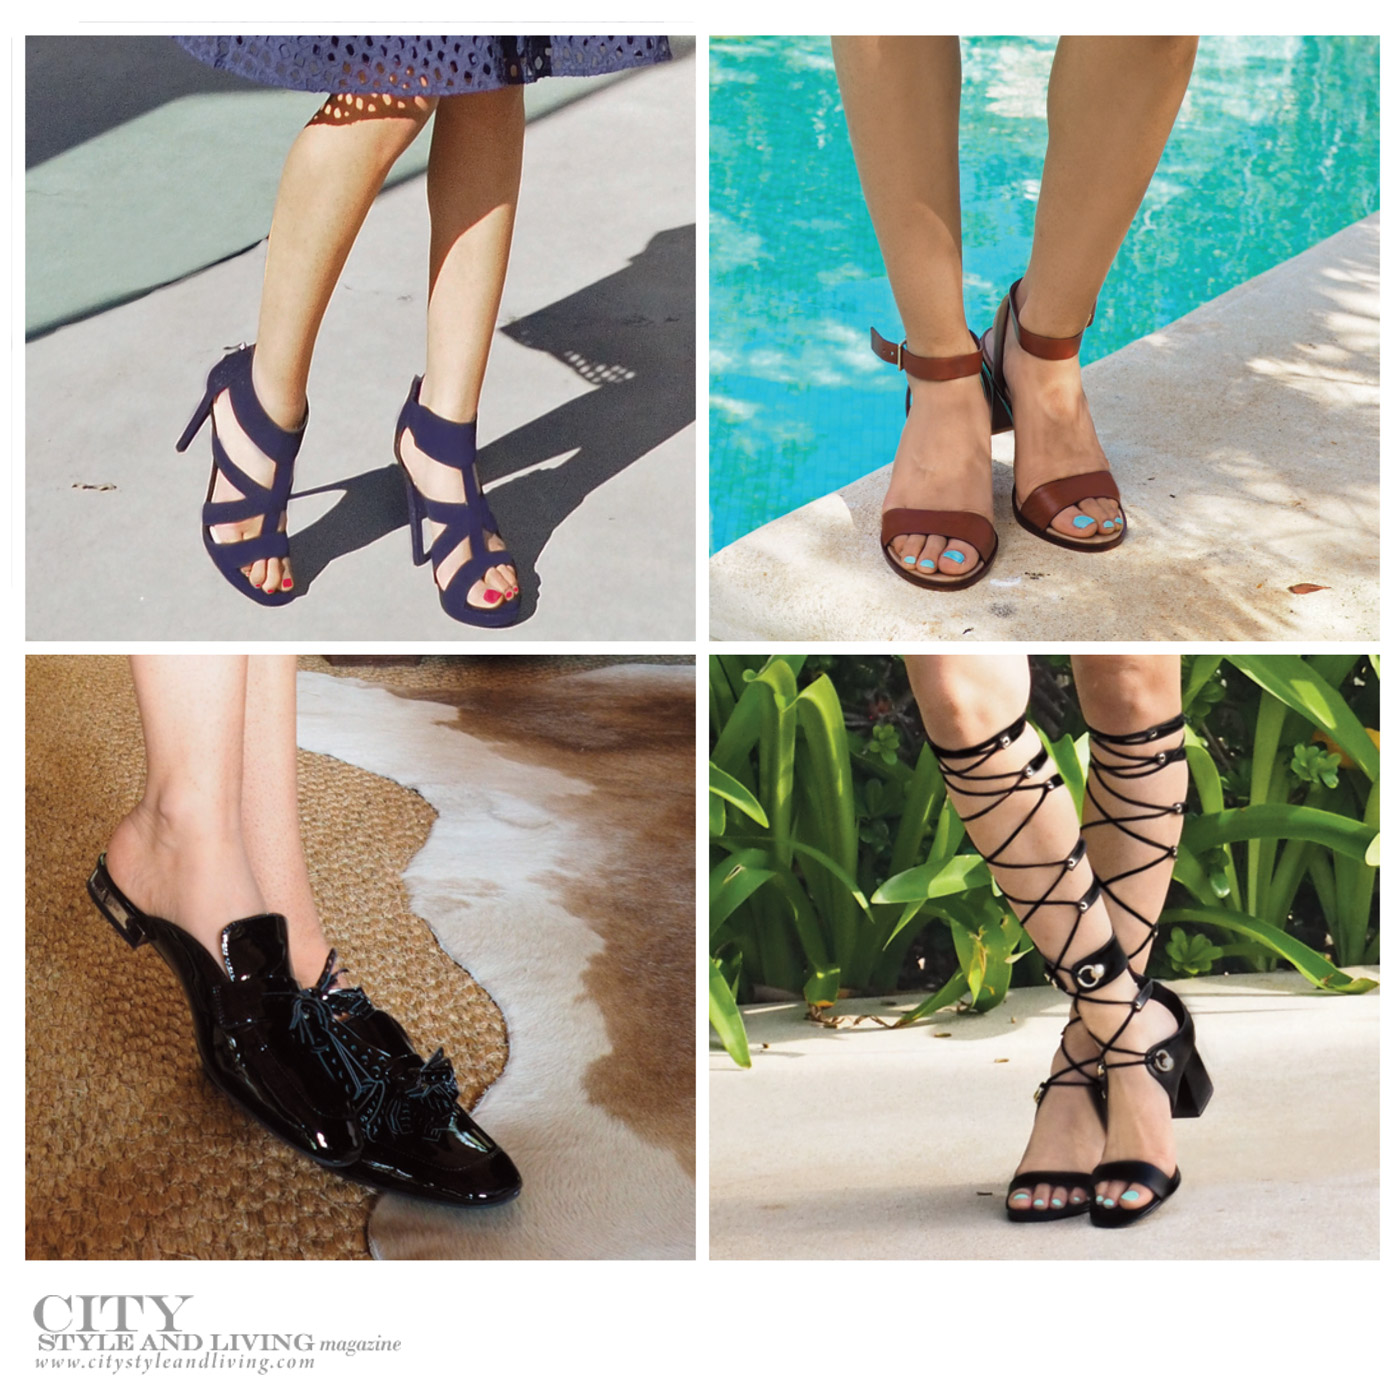 City Style and Living Magazine Summer 2019 Fashion Trends Shoes